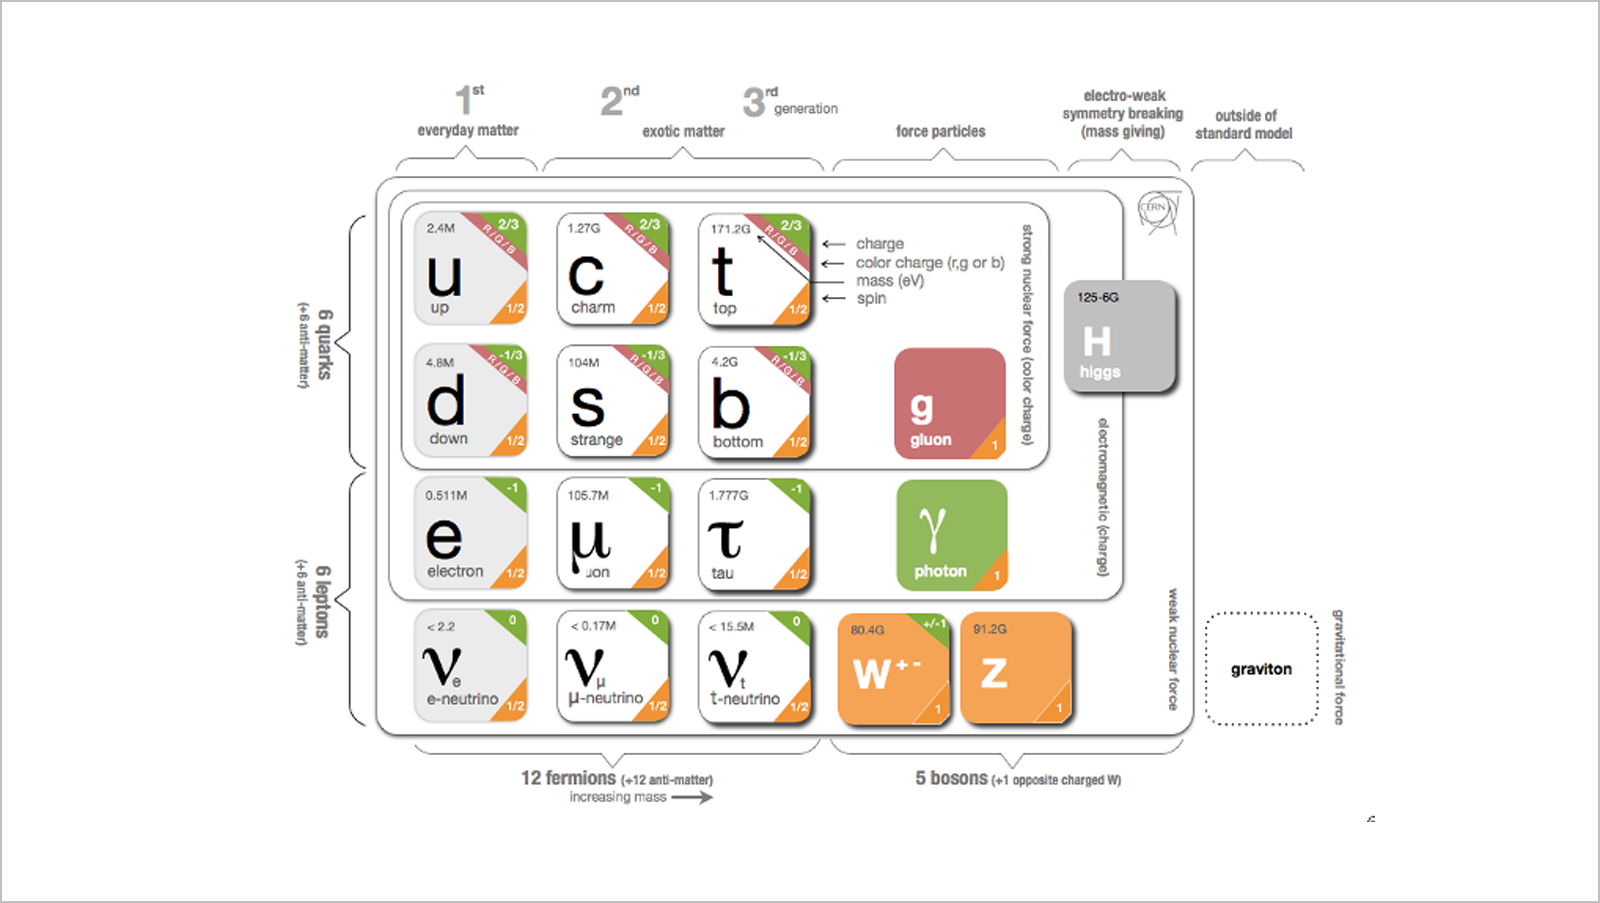 UX: Standard Model of the Standard Model